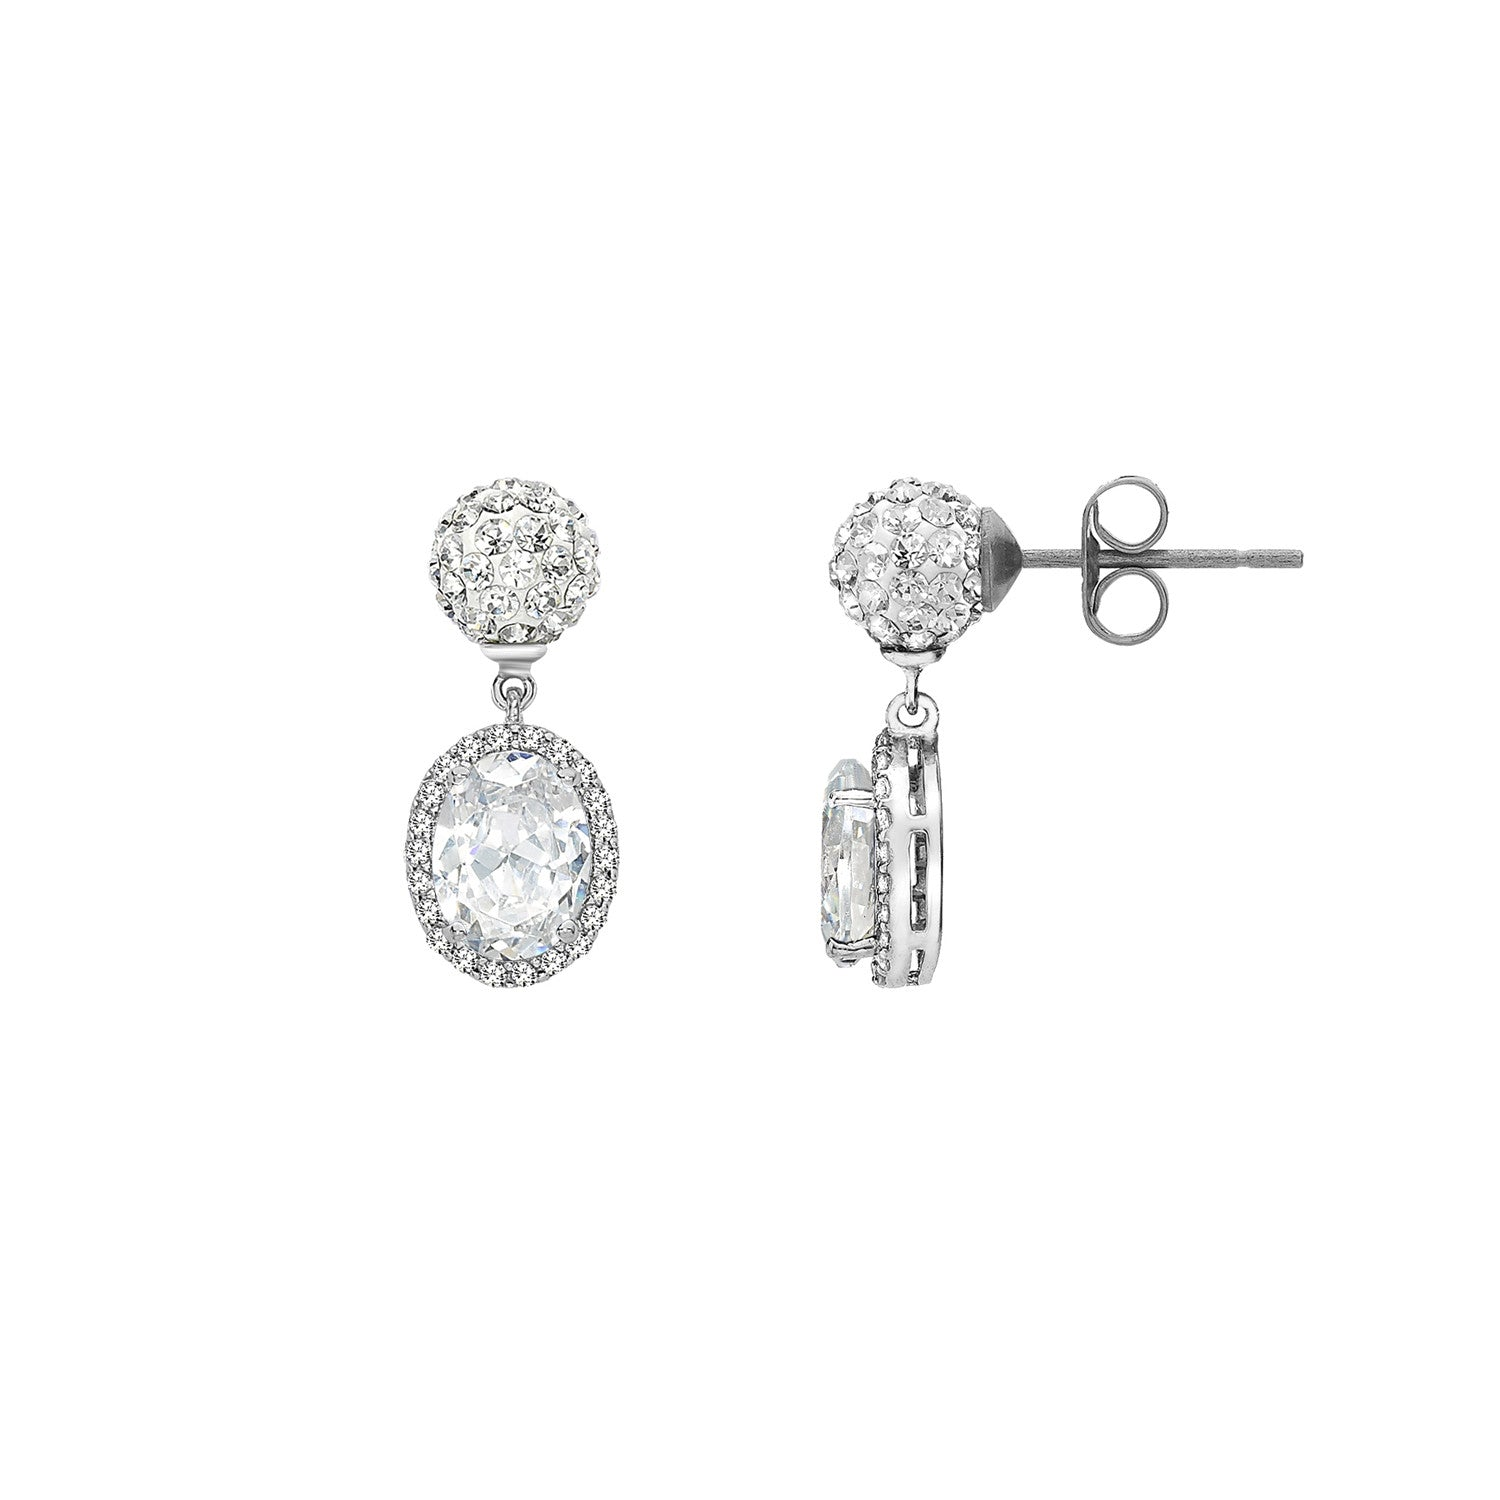 Tresor Paris Earrings Souverain Blanc